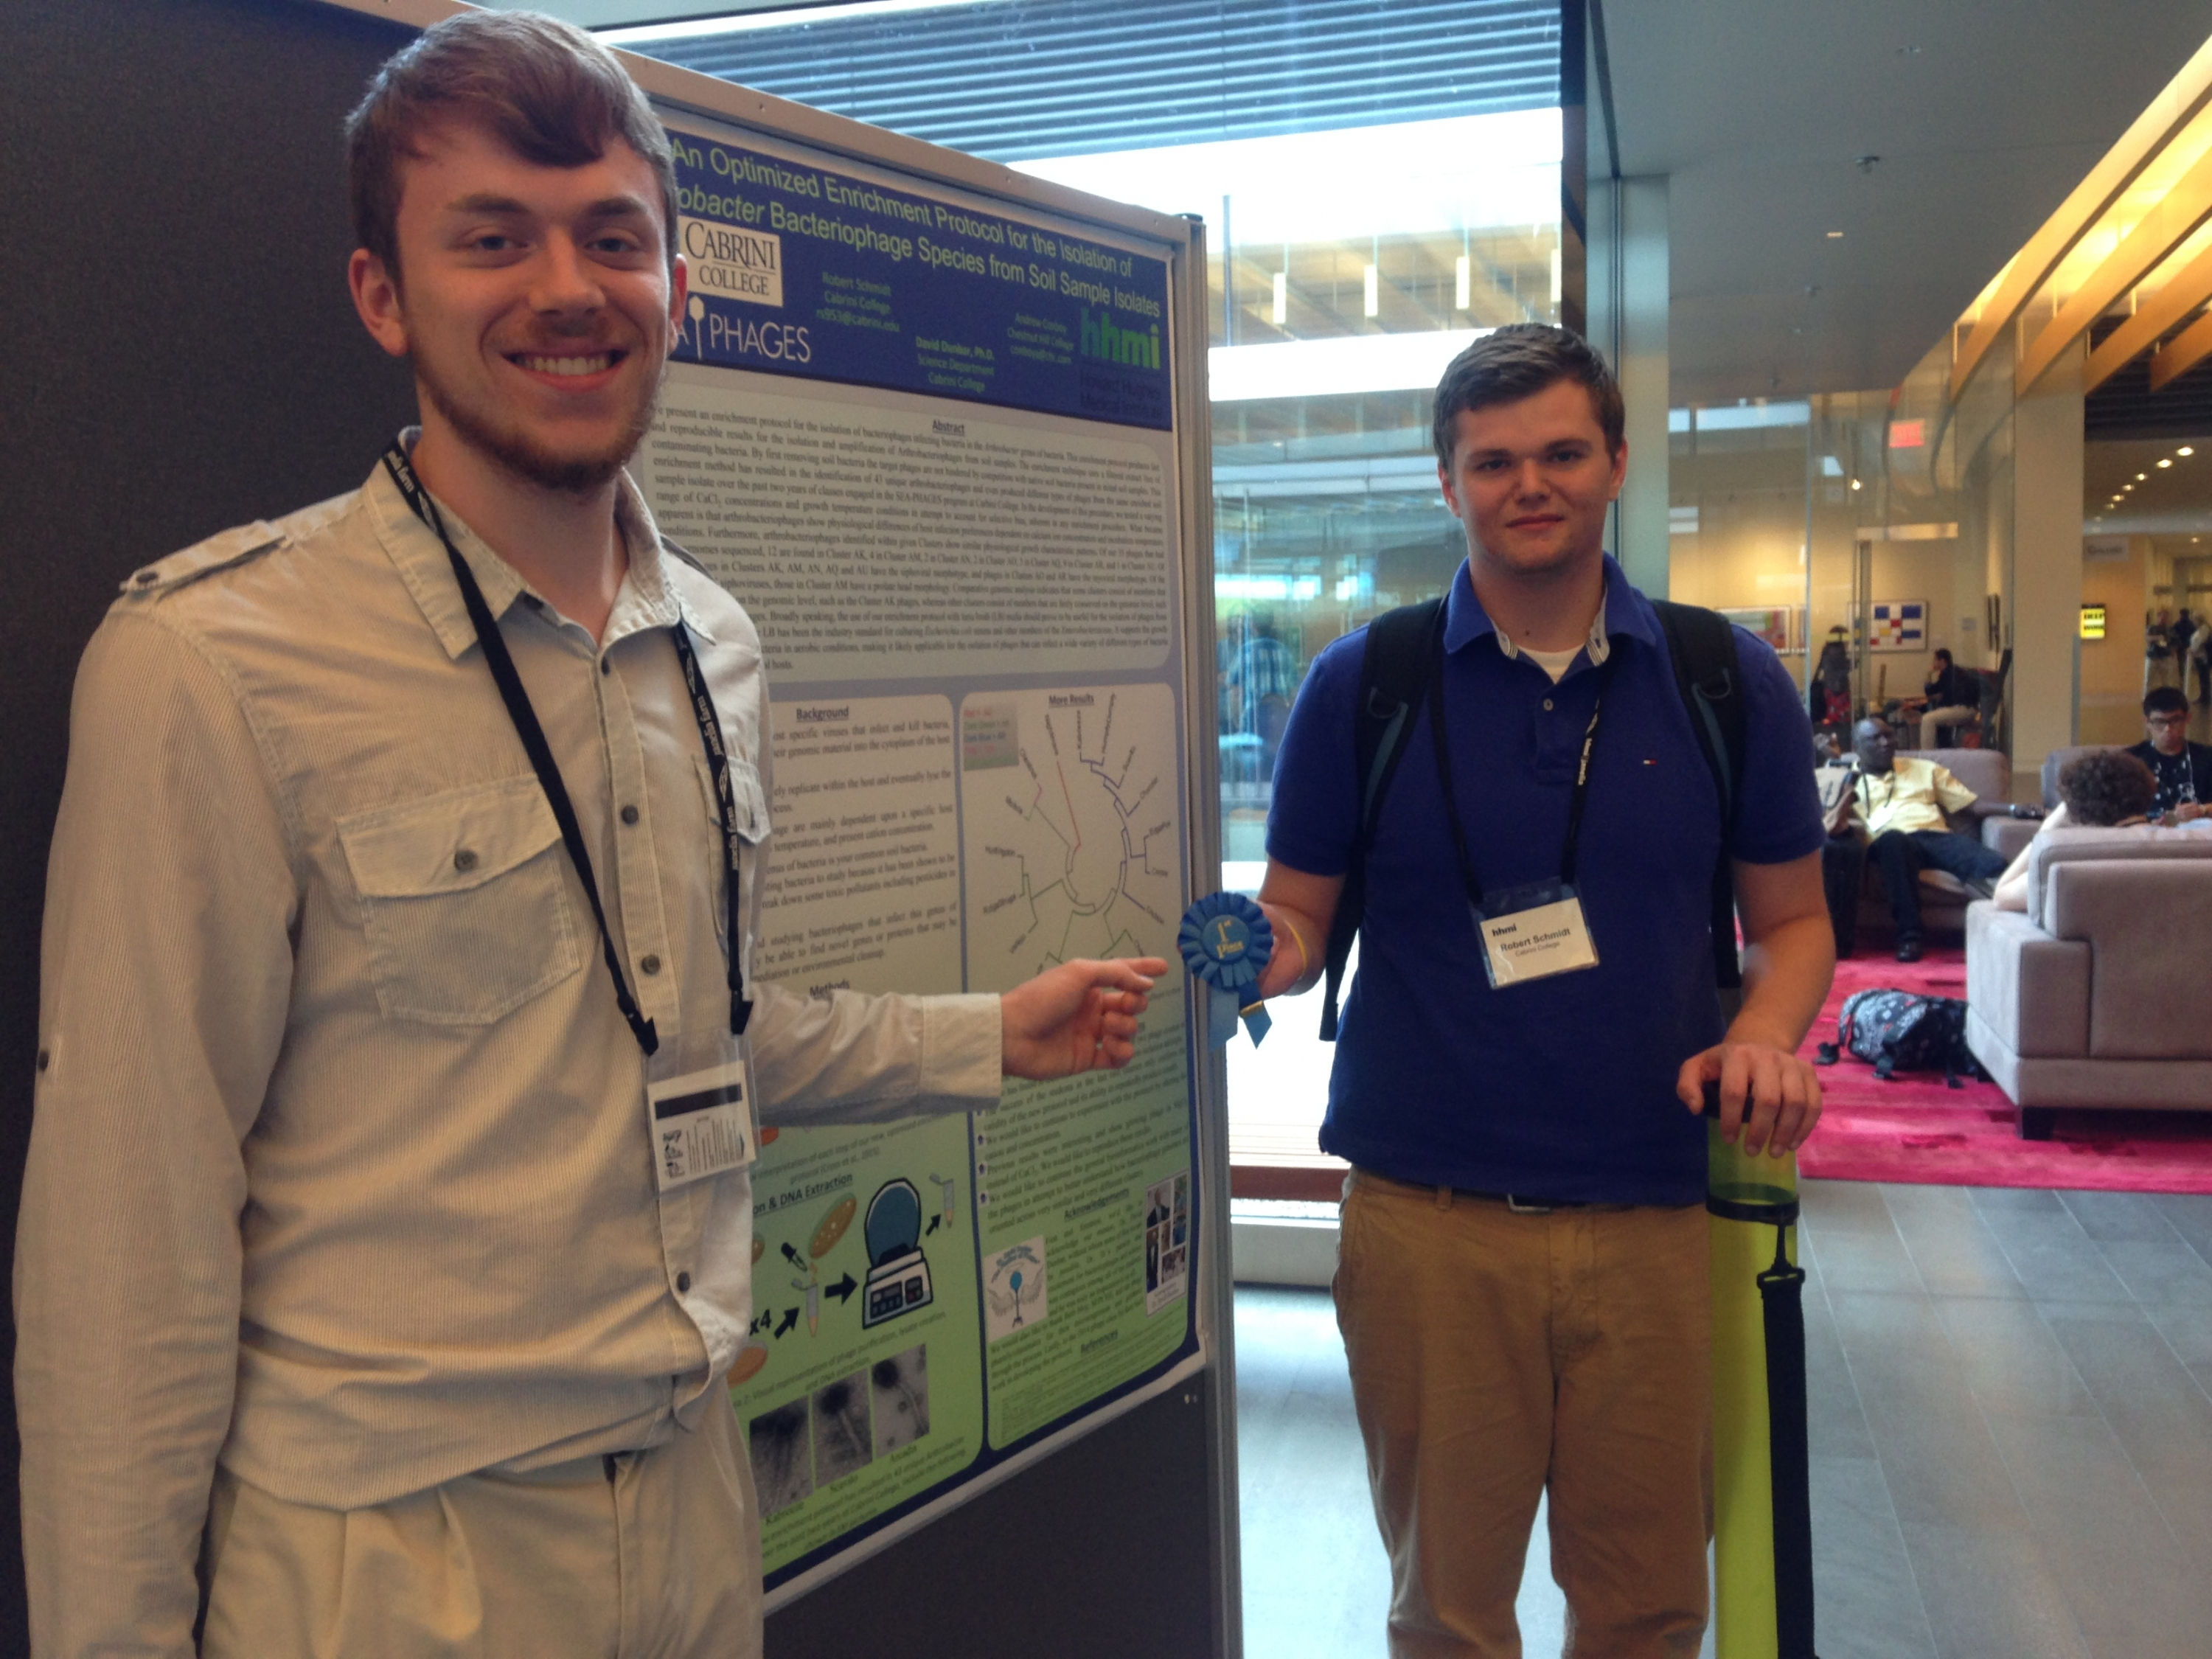 Andrew Conboy '18, left, and Robert Schmidt '17 stand with their winning poster. Photo courtesy of Andrew Conboy '18